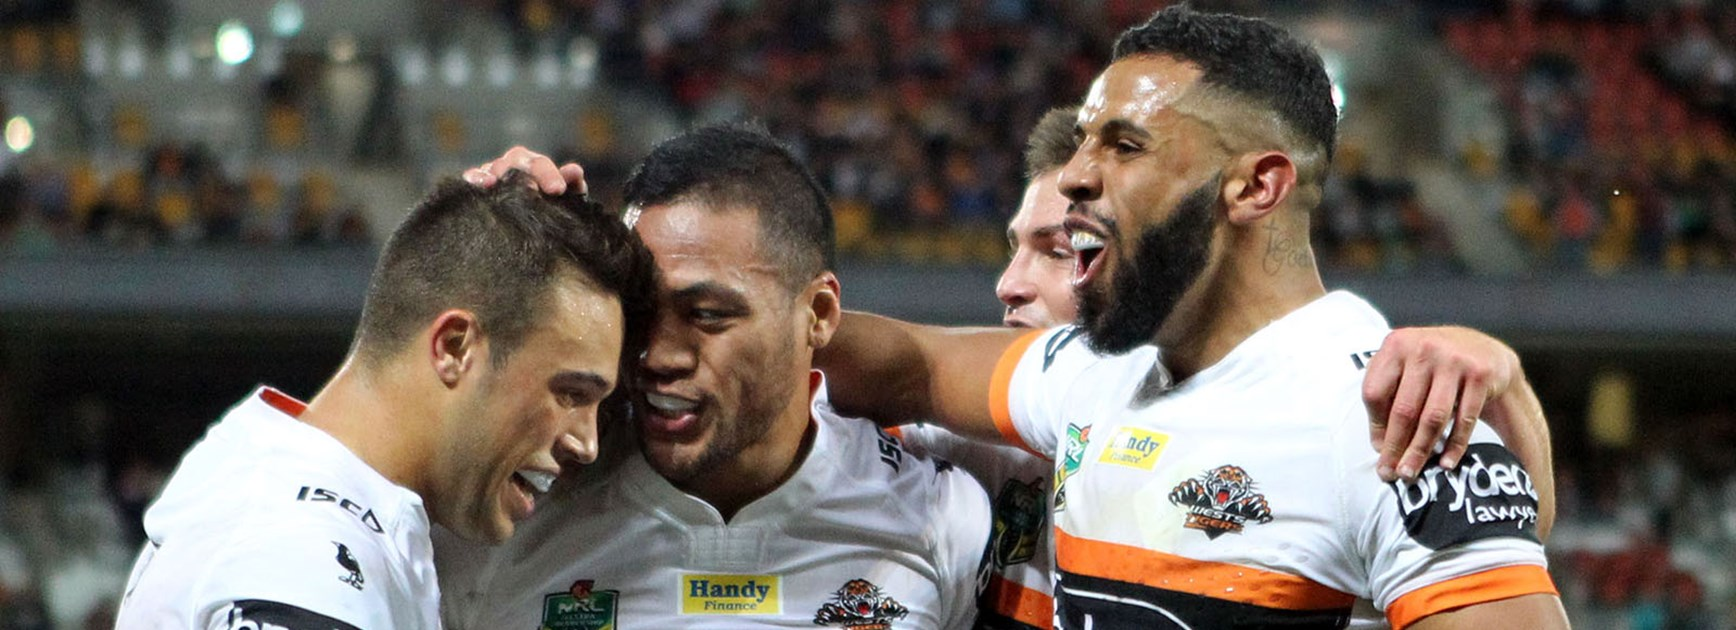 The Wests Tigers celebrate a try to Tim Simona against the Broncos at Suncorp Stadium.